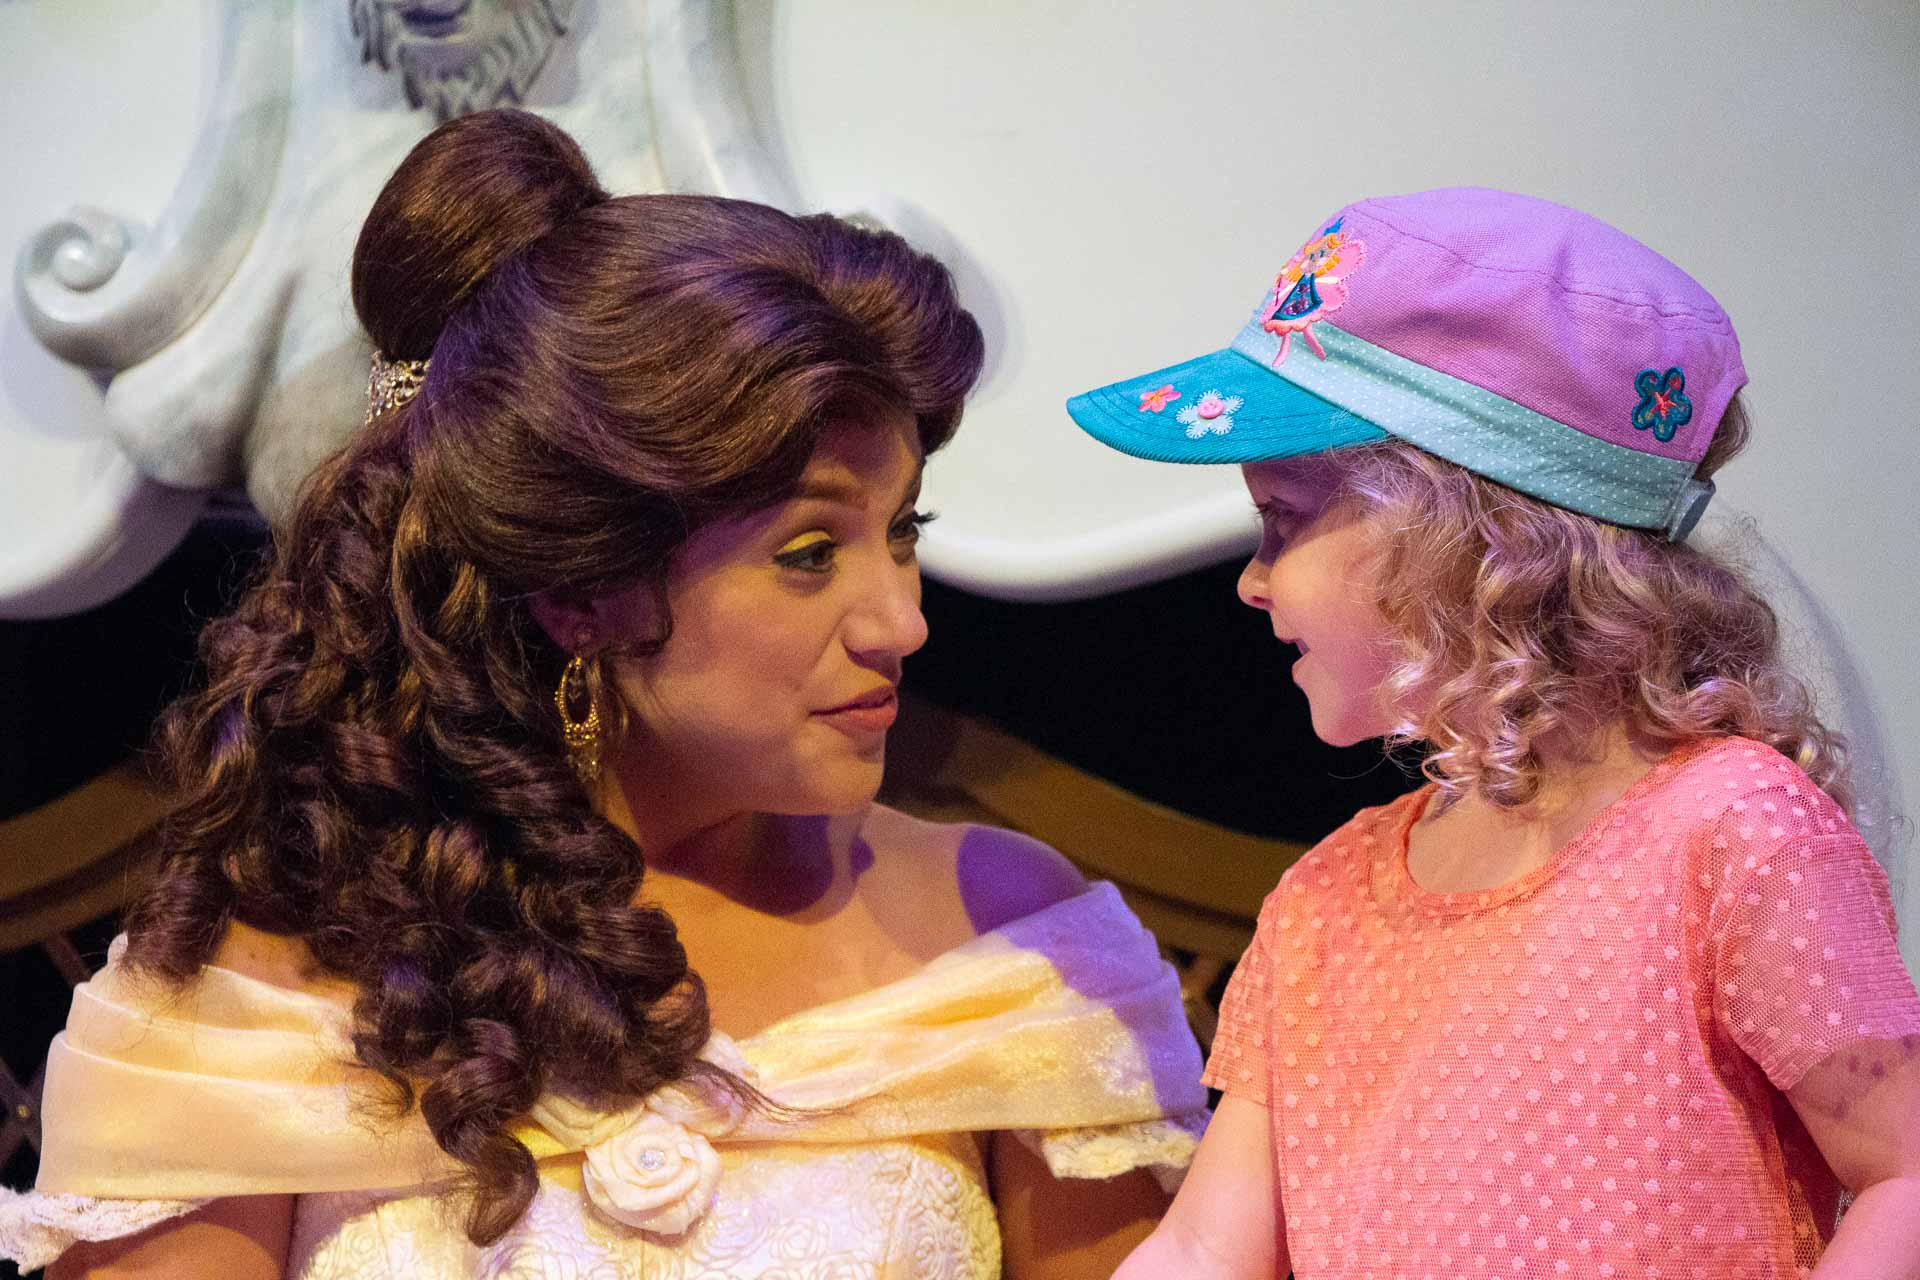 Meeting Belle at Walt Disney World